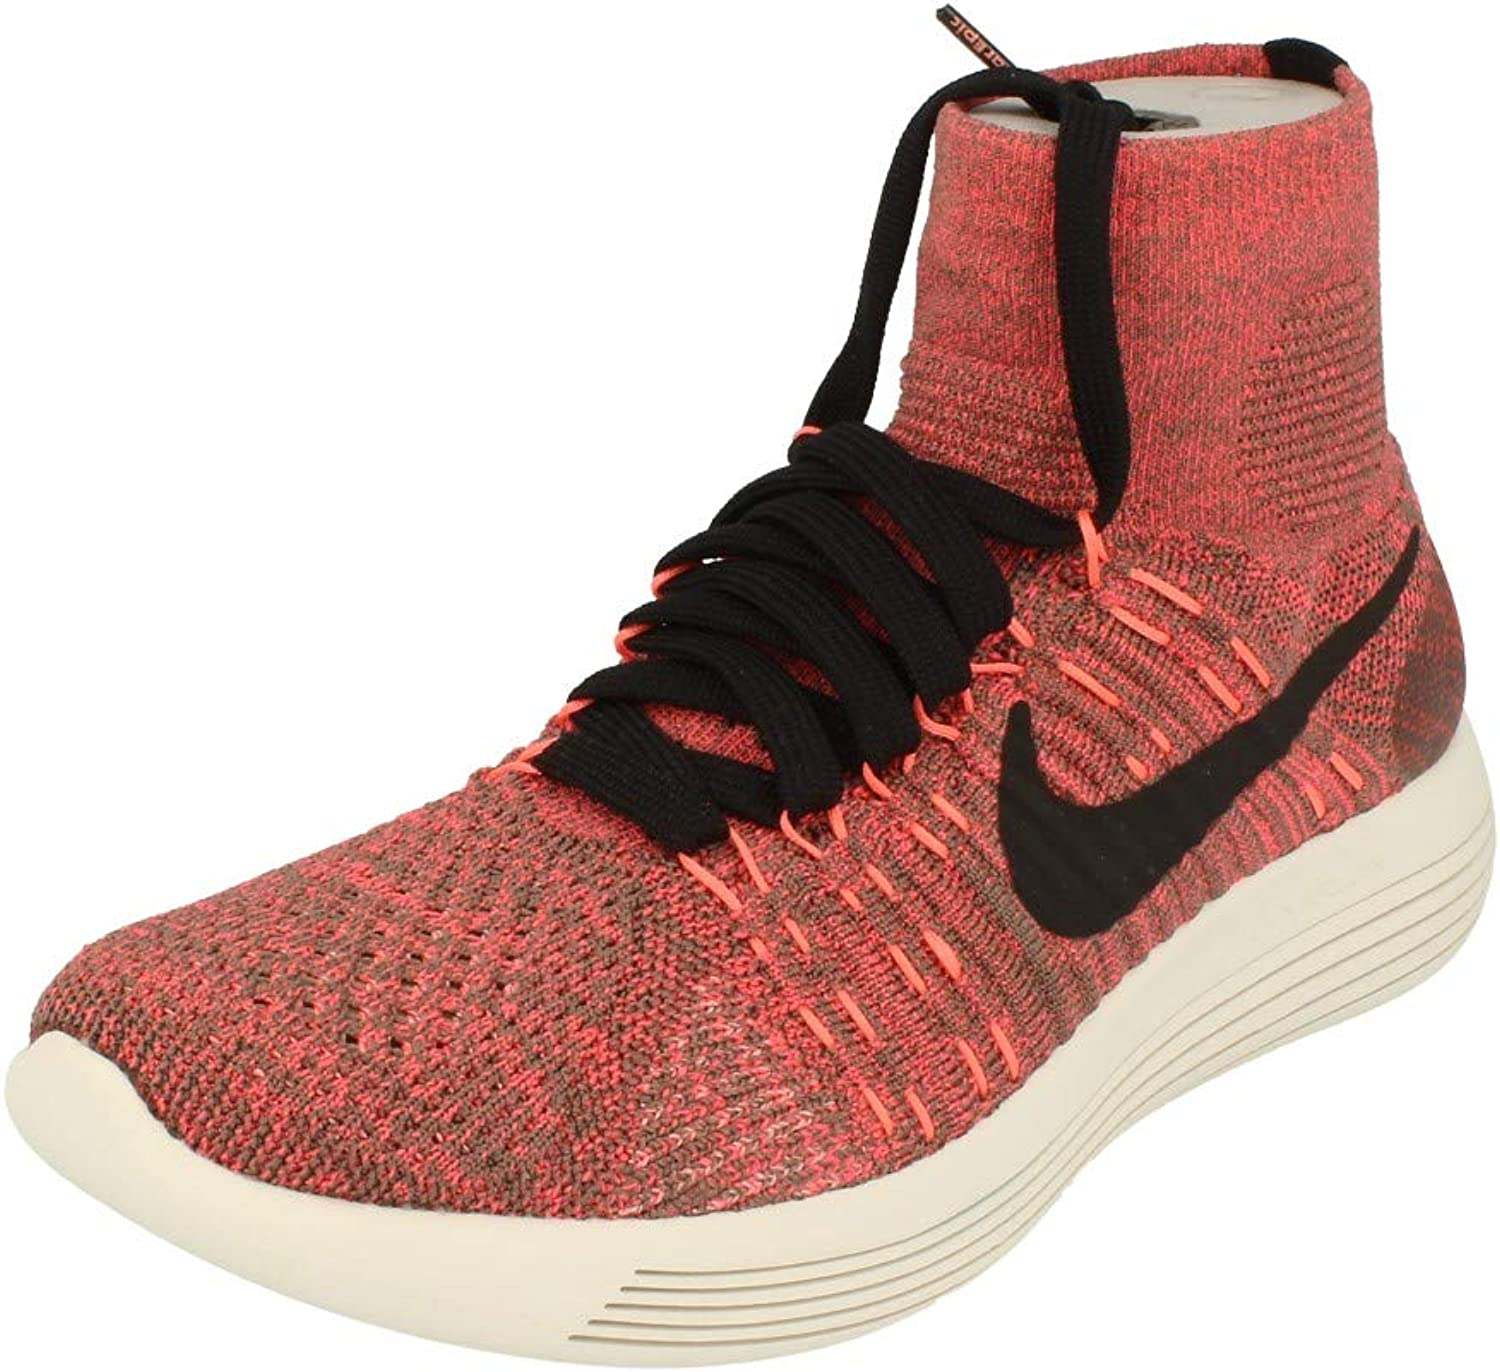 Nike Womens Lunarepic Flyknit Running Trainers 818677 Sneakers shoes (Dark Mushroom hot Punch 200)